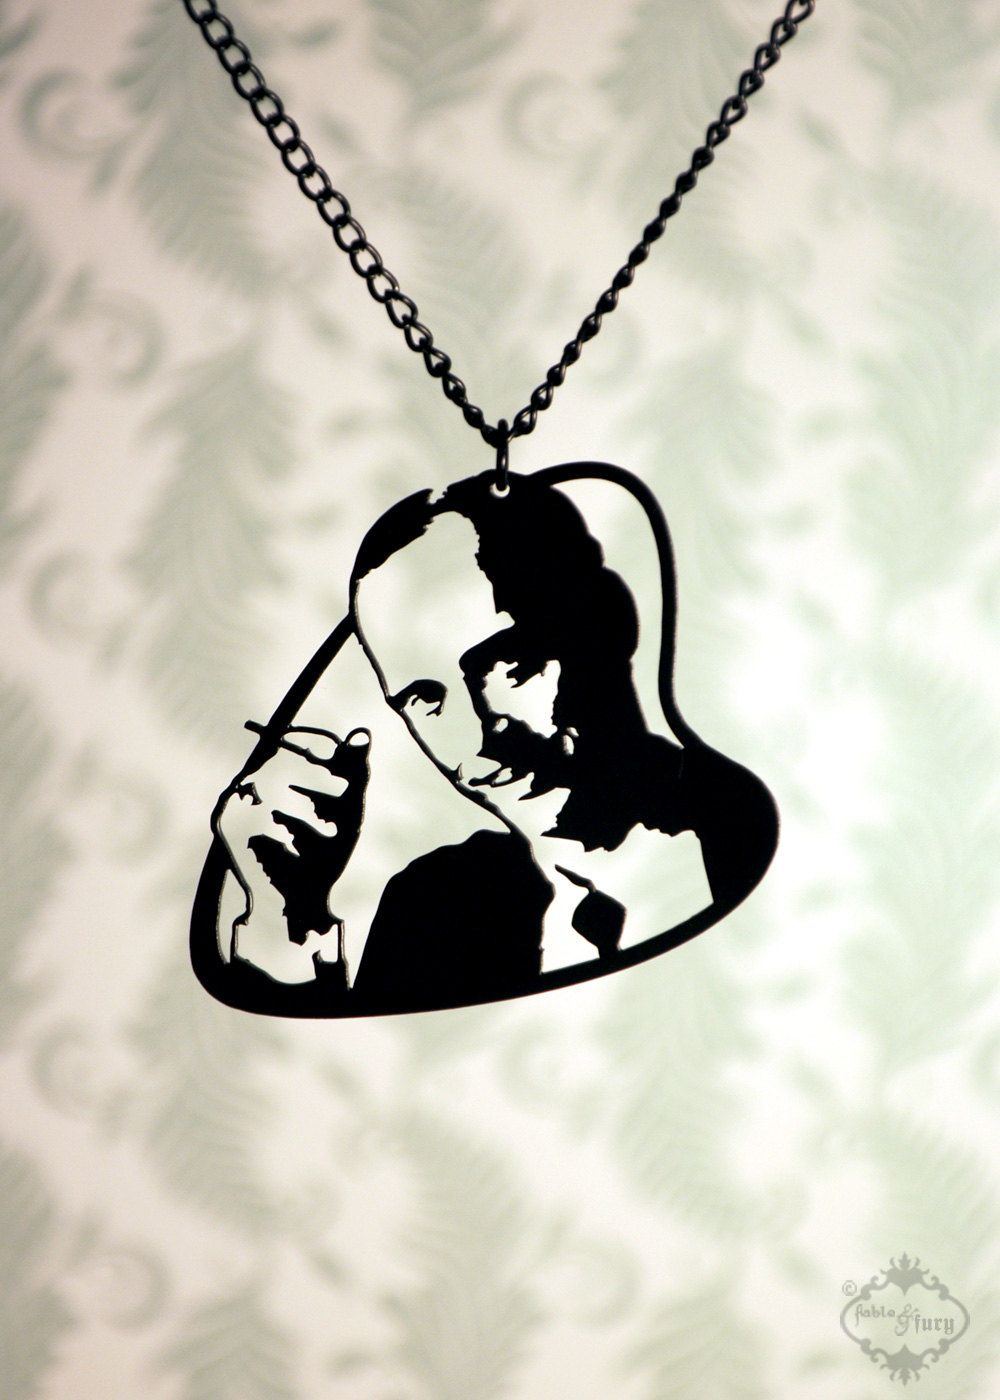 John Waters tribute silhouette necklace, portrait pendant in black stainless steel - cult film geekery. $32.00, via Etsy.